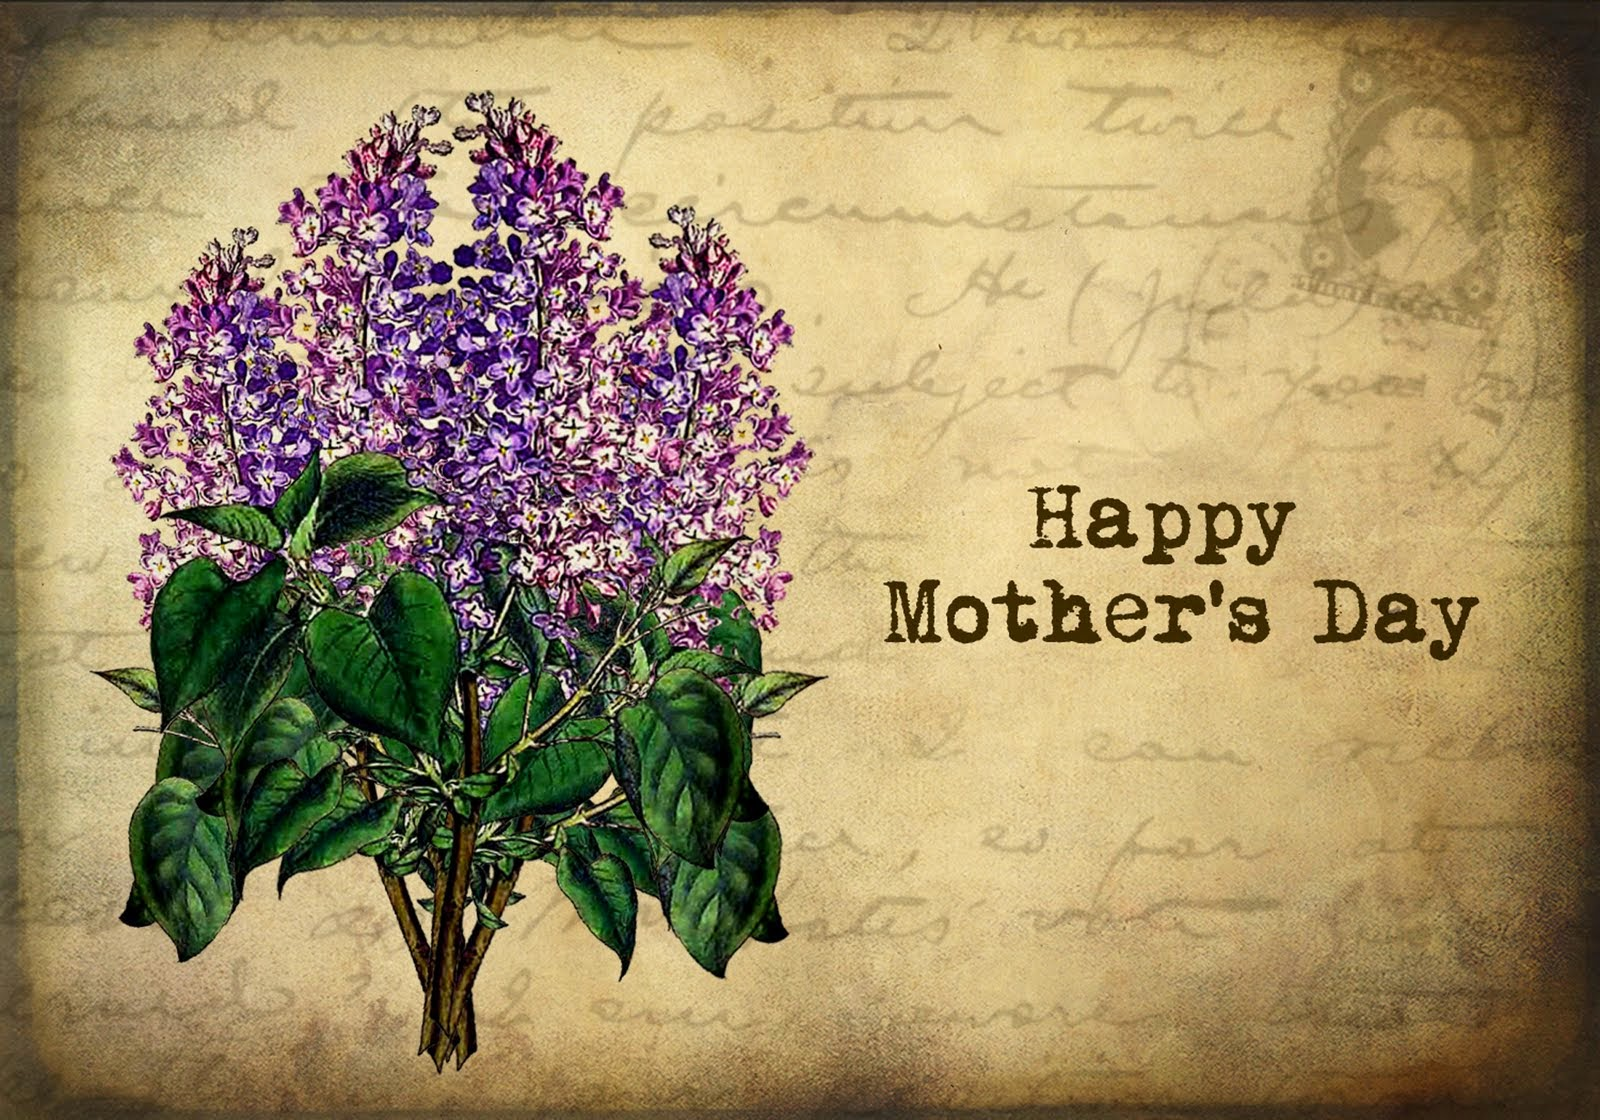 Happy Mother's Day 2014 Wishes HD Wallpapers Free Download